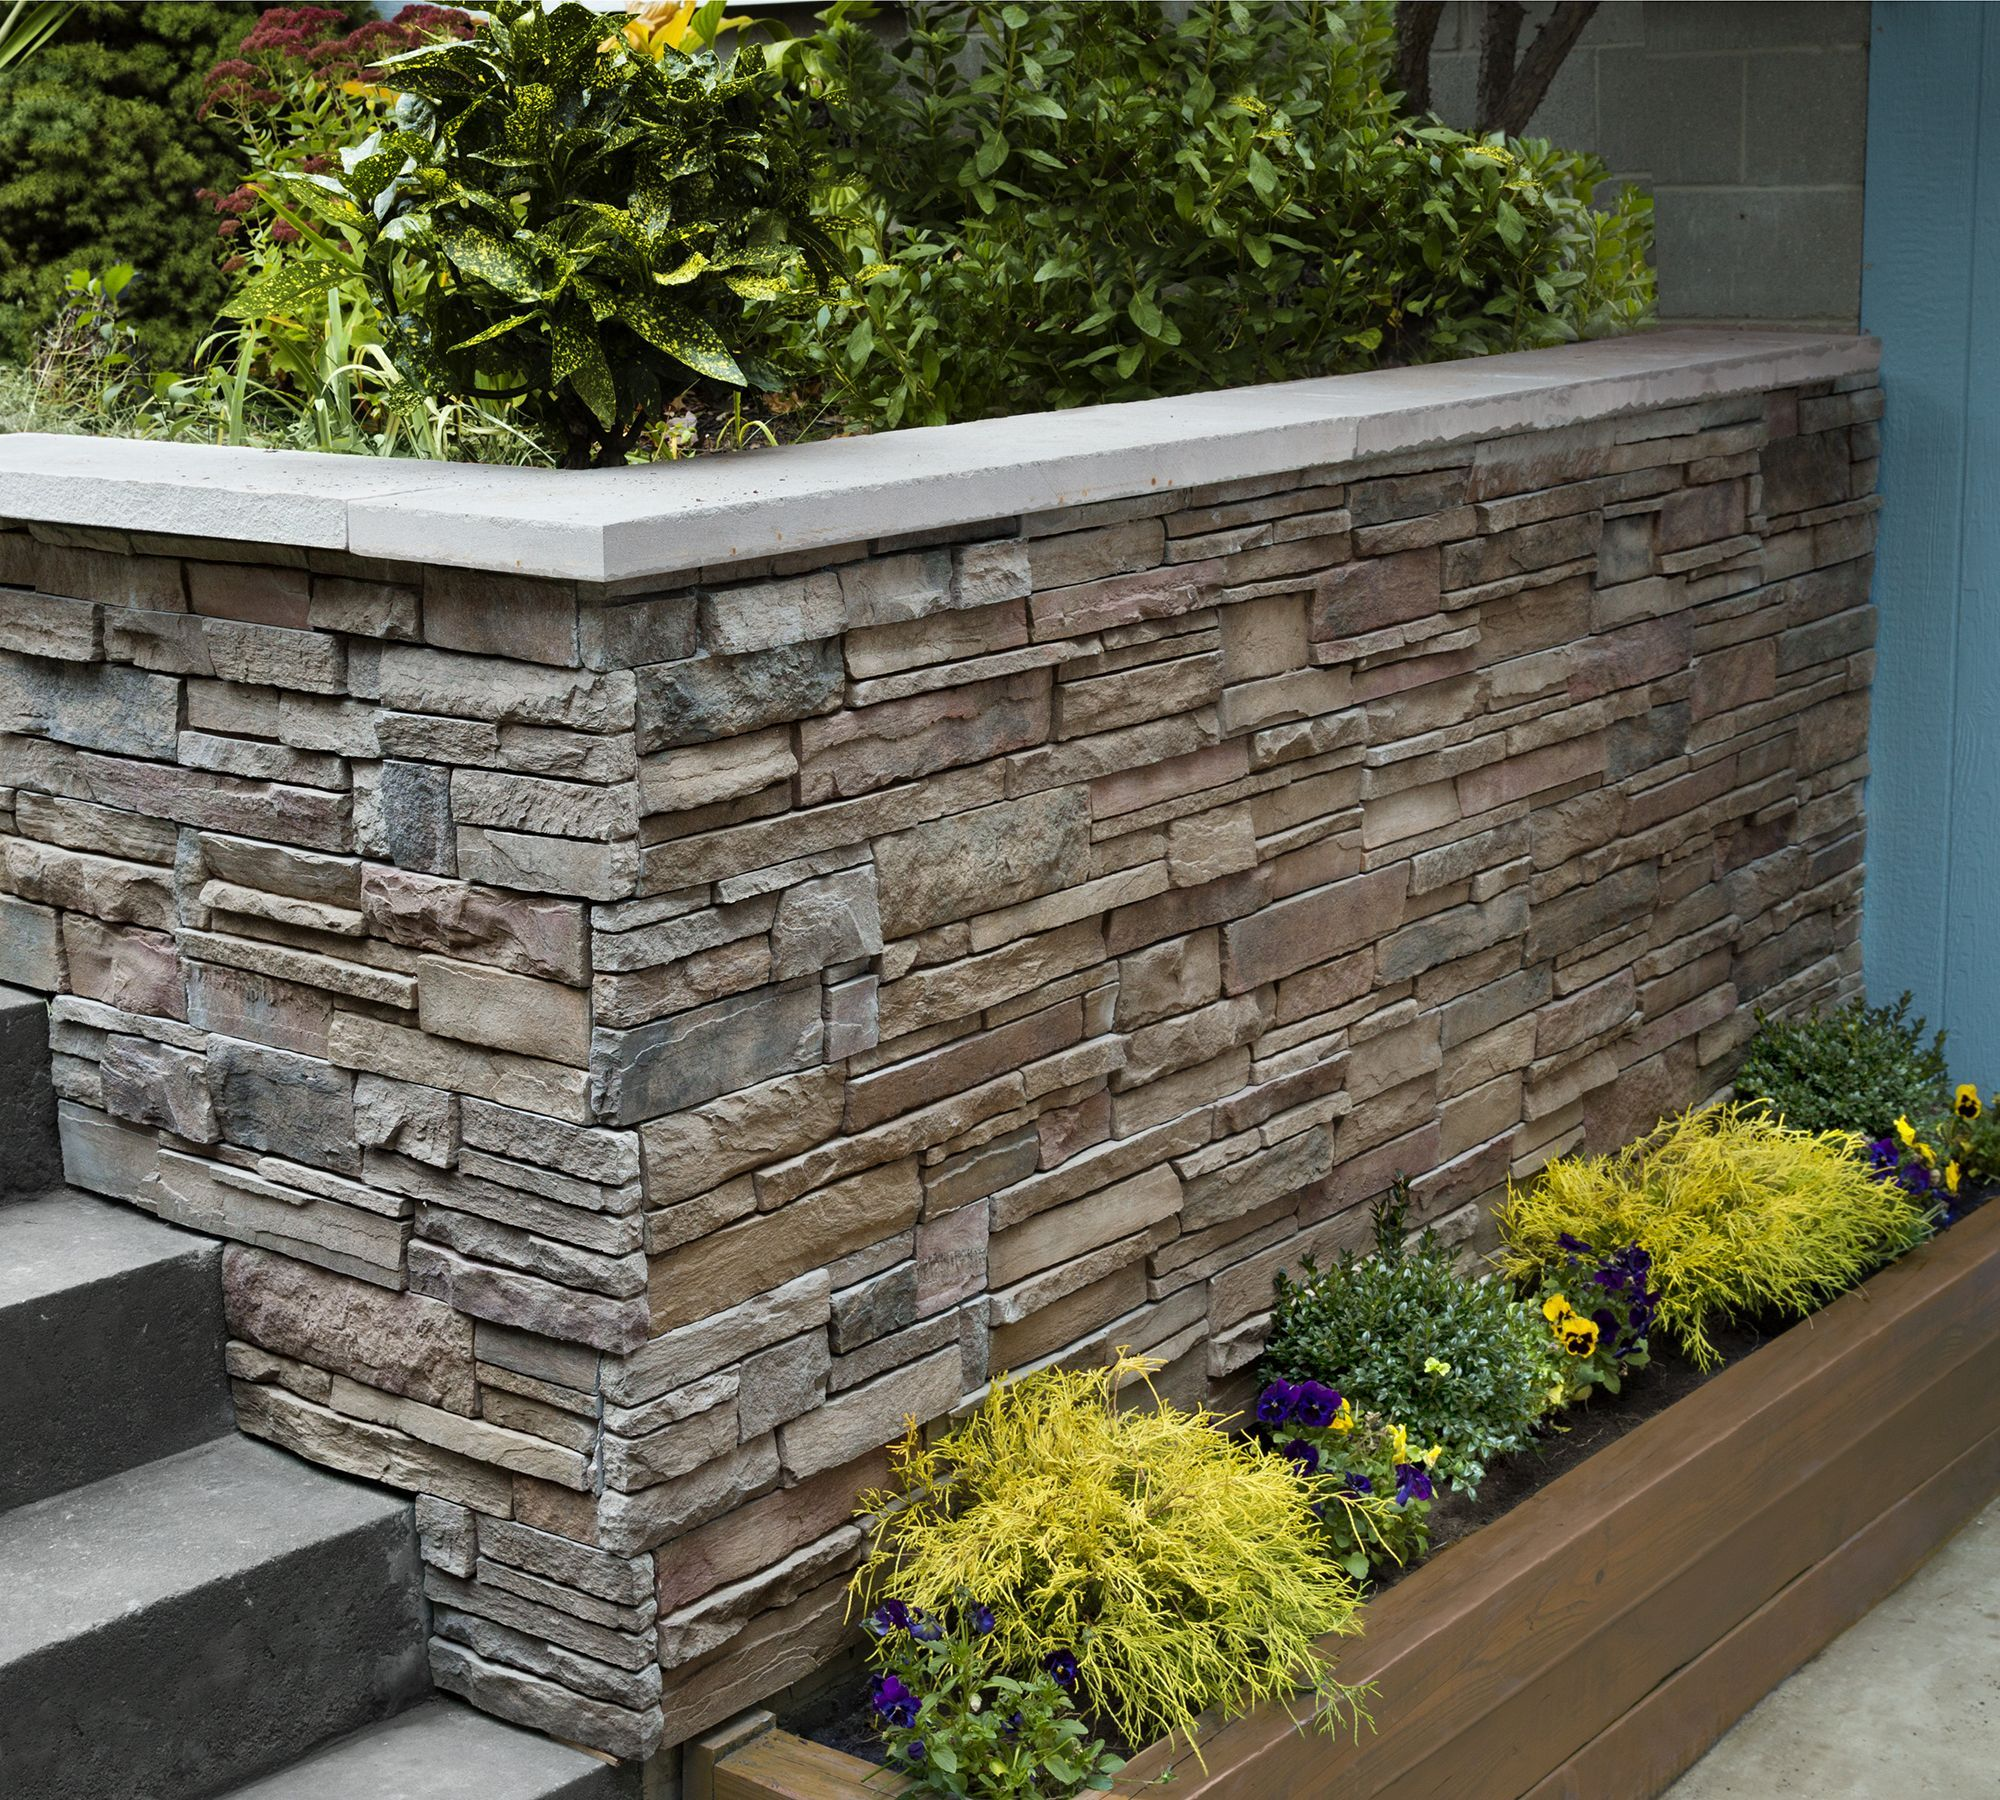 Dressing Up A Block Wall With Stone Veneer Panels With This Old House Landscape Contractor Roger Cook Exterior Stone Stone Facade Exterior Wall Panels